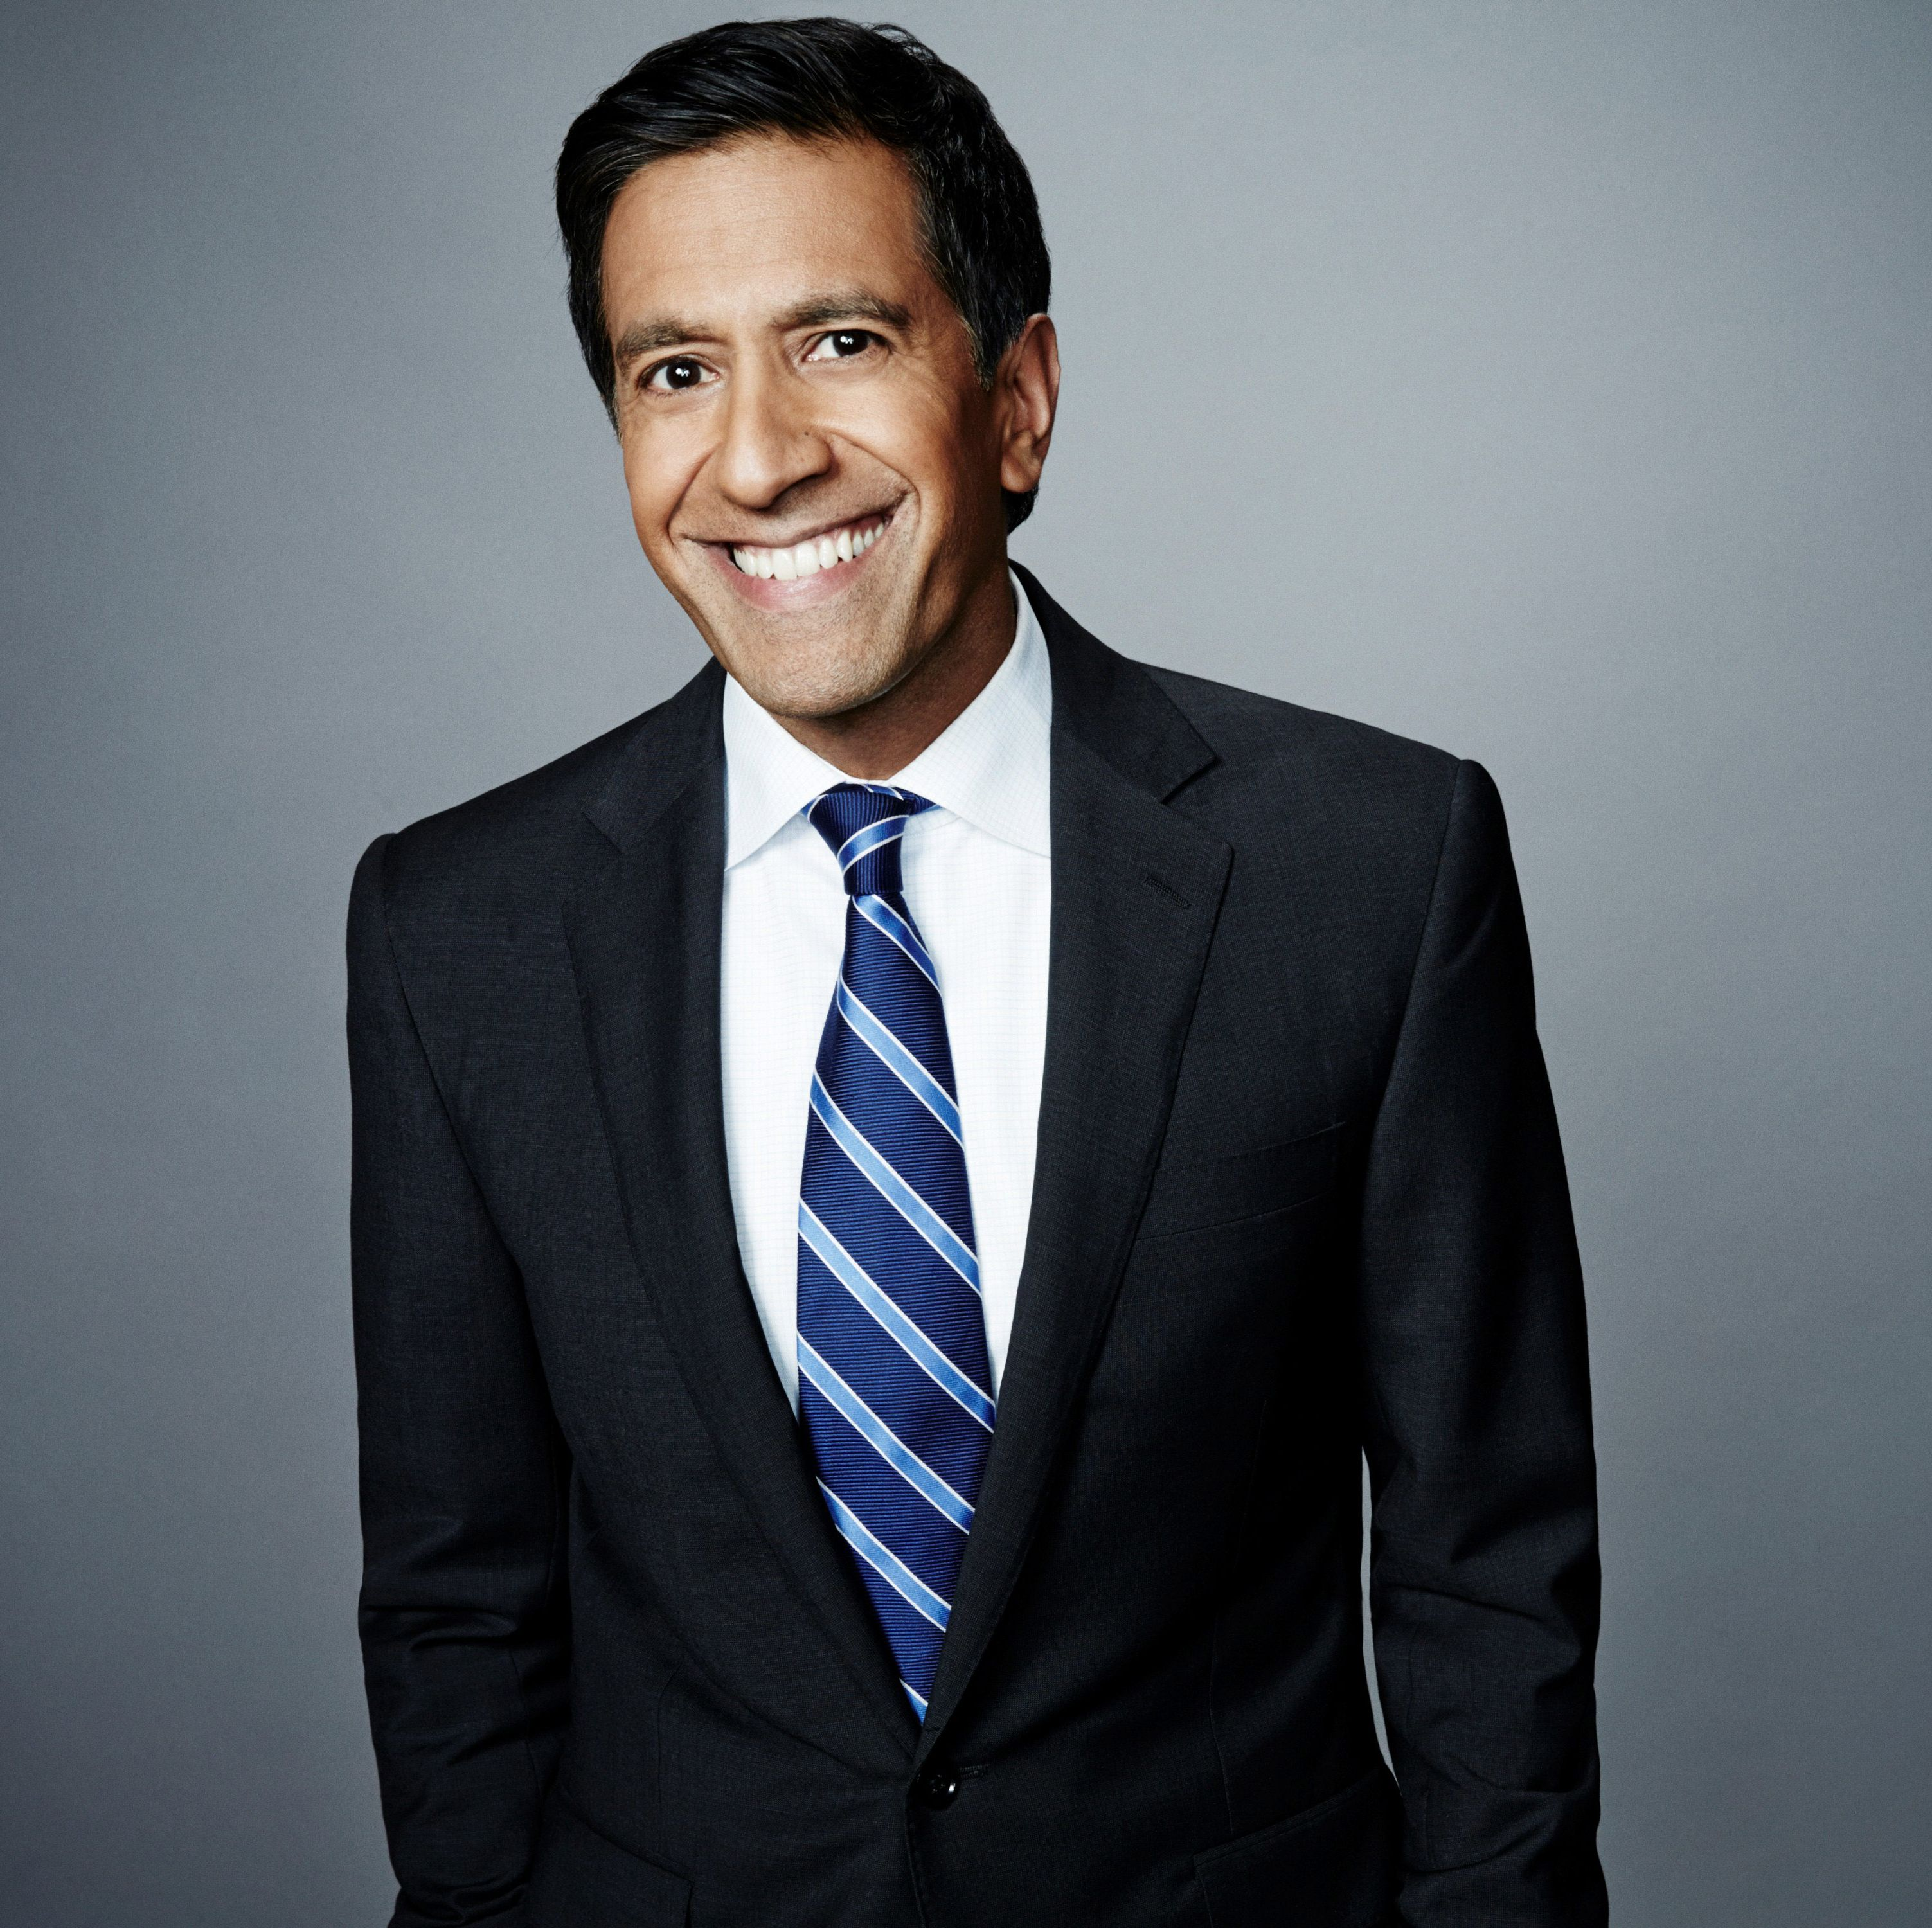 Dr. Sanjay Gupta Reveals the Secret to Living Happier and Longer in Chasing Life